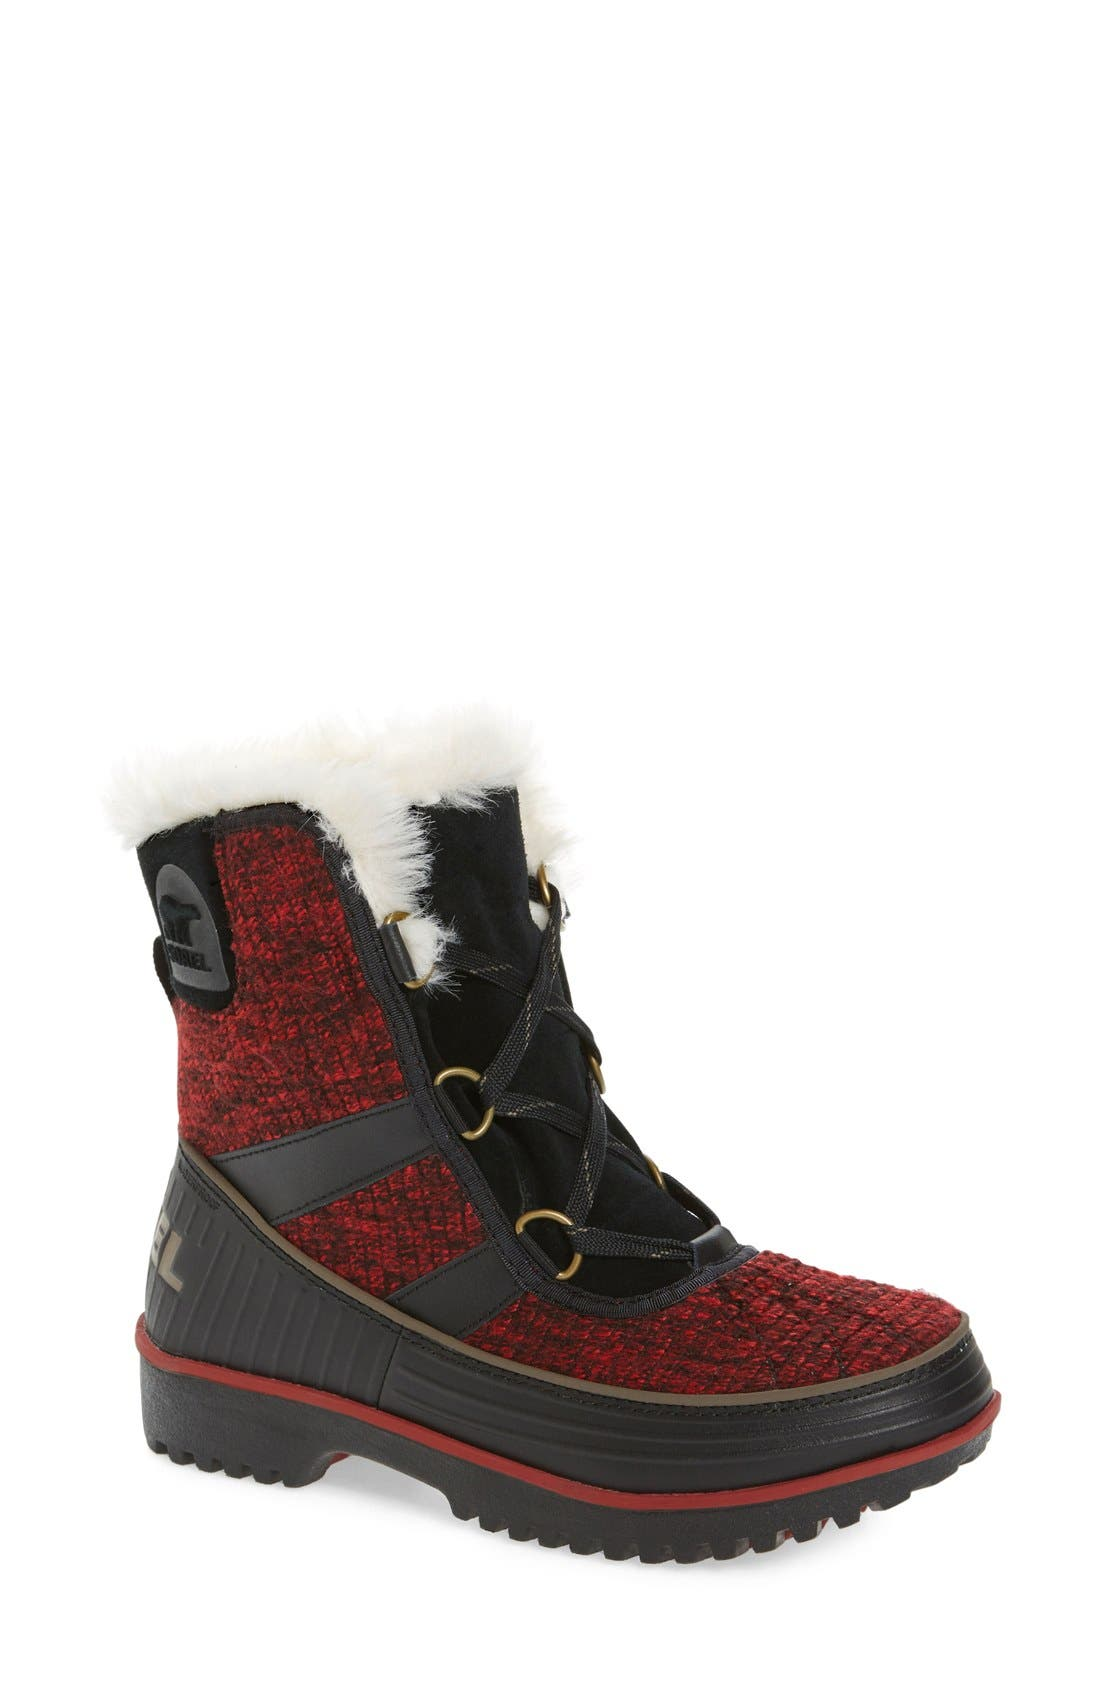 Main Image - SOREL 'Tivoli II' Waterproof Boot (Women)